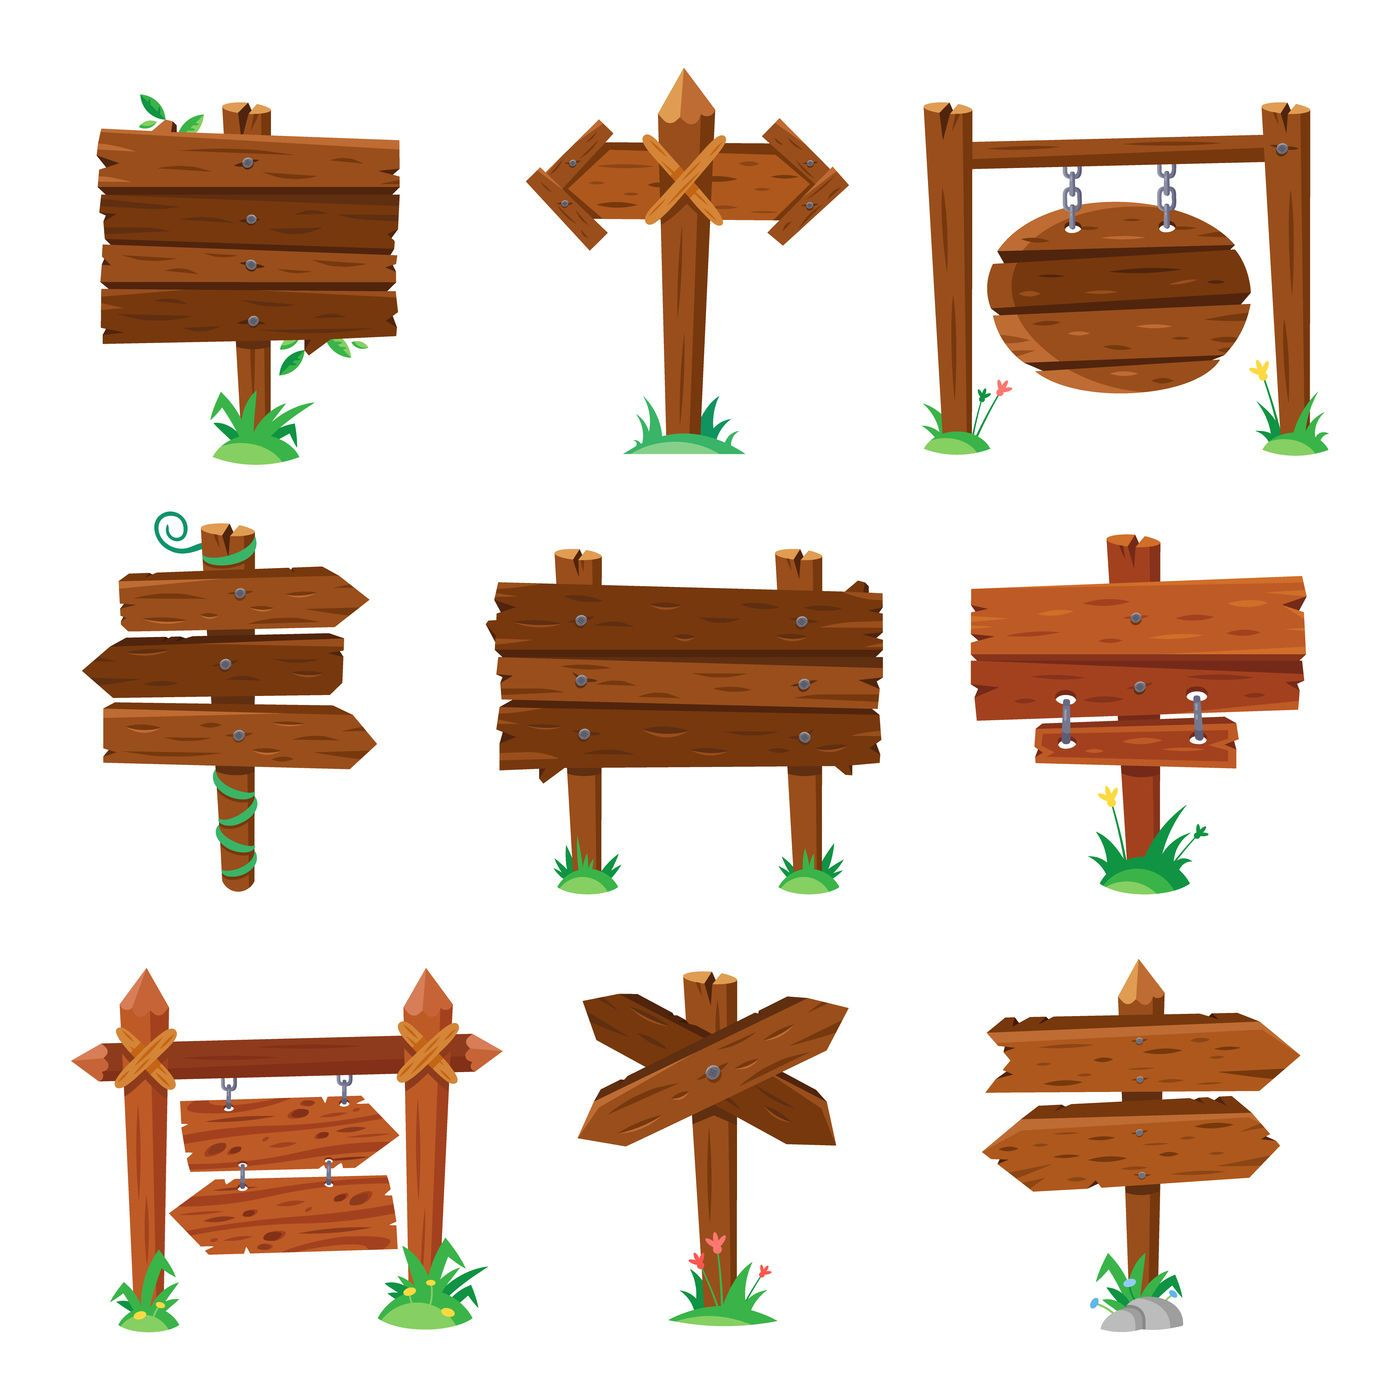 Sign Boards In Green Grass Wooden Plank Road Signs Wood Signboard Or By Tartila Thehungryjpeg Com Grass Sponsore Signboard Wooden Sign Posts Wooden Signs